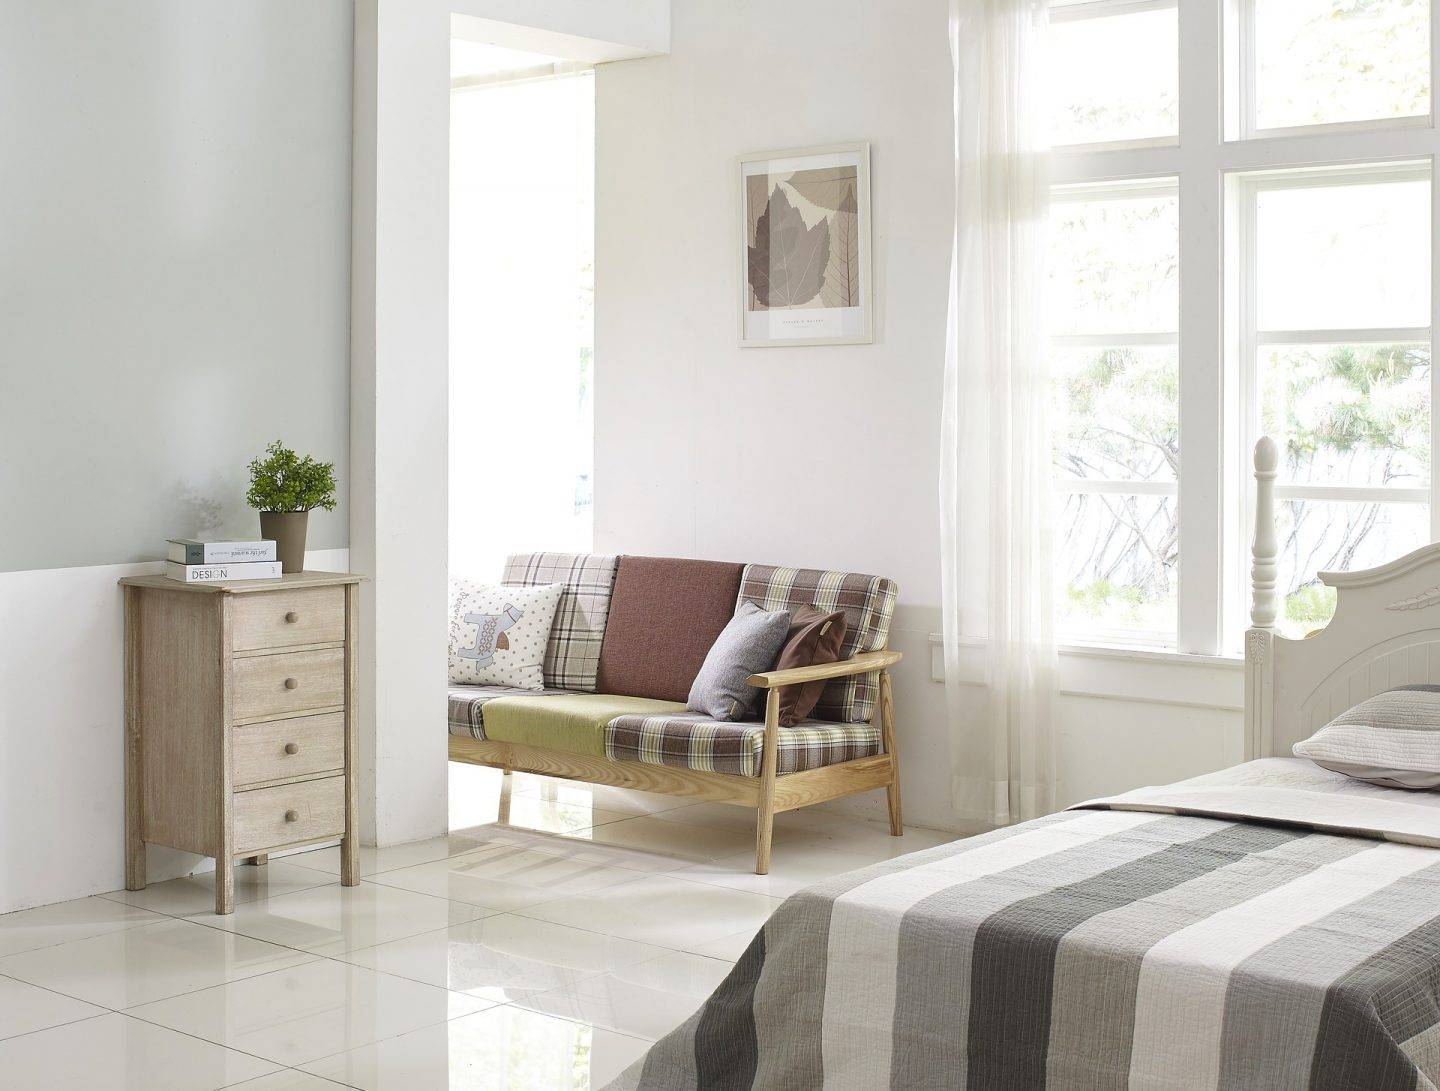 Tips for giving your bedroom a Spring makeover